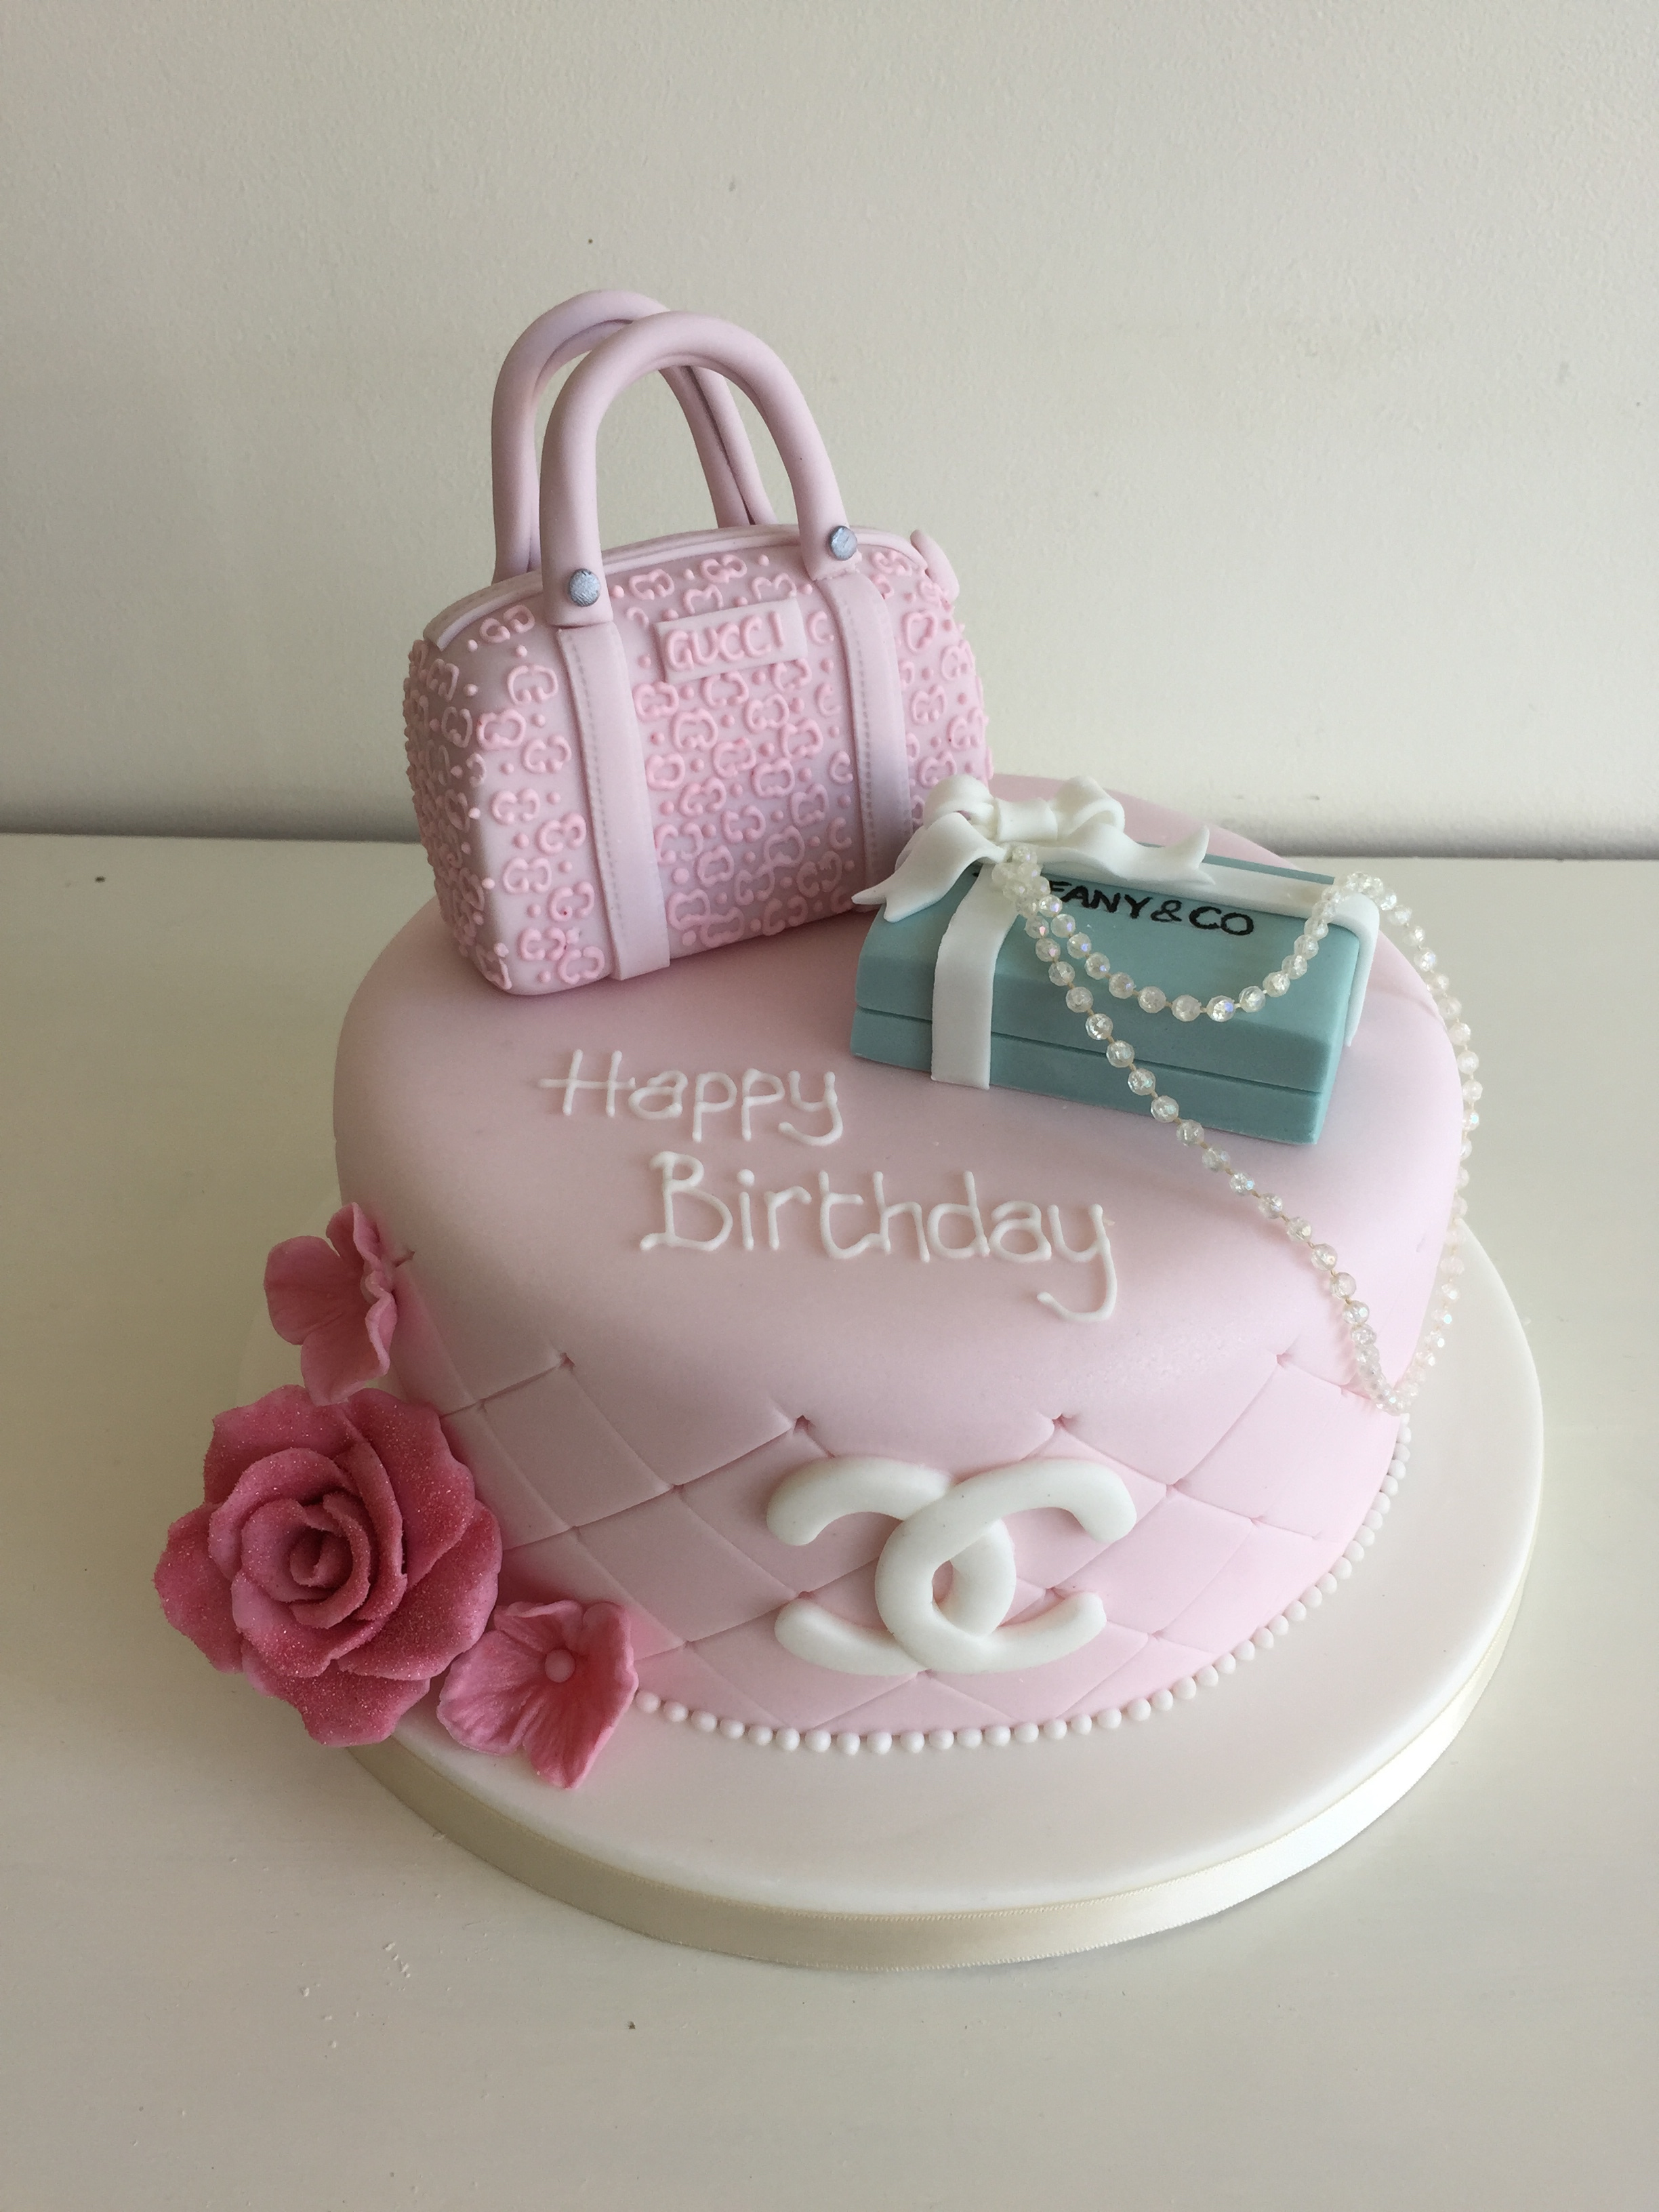 One Tier Designer Shopping Bags Female Birthday Cakes Channel Gucci Tiffany Bedfordshire Hertfordshire London